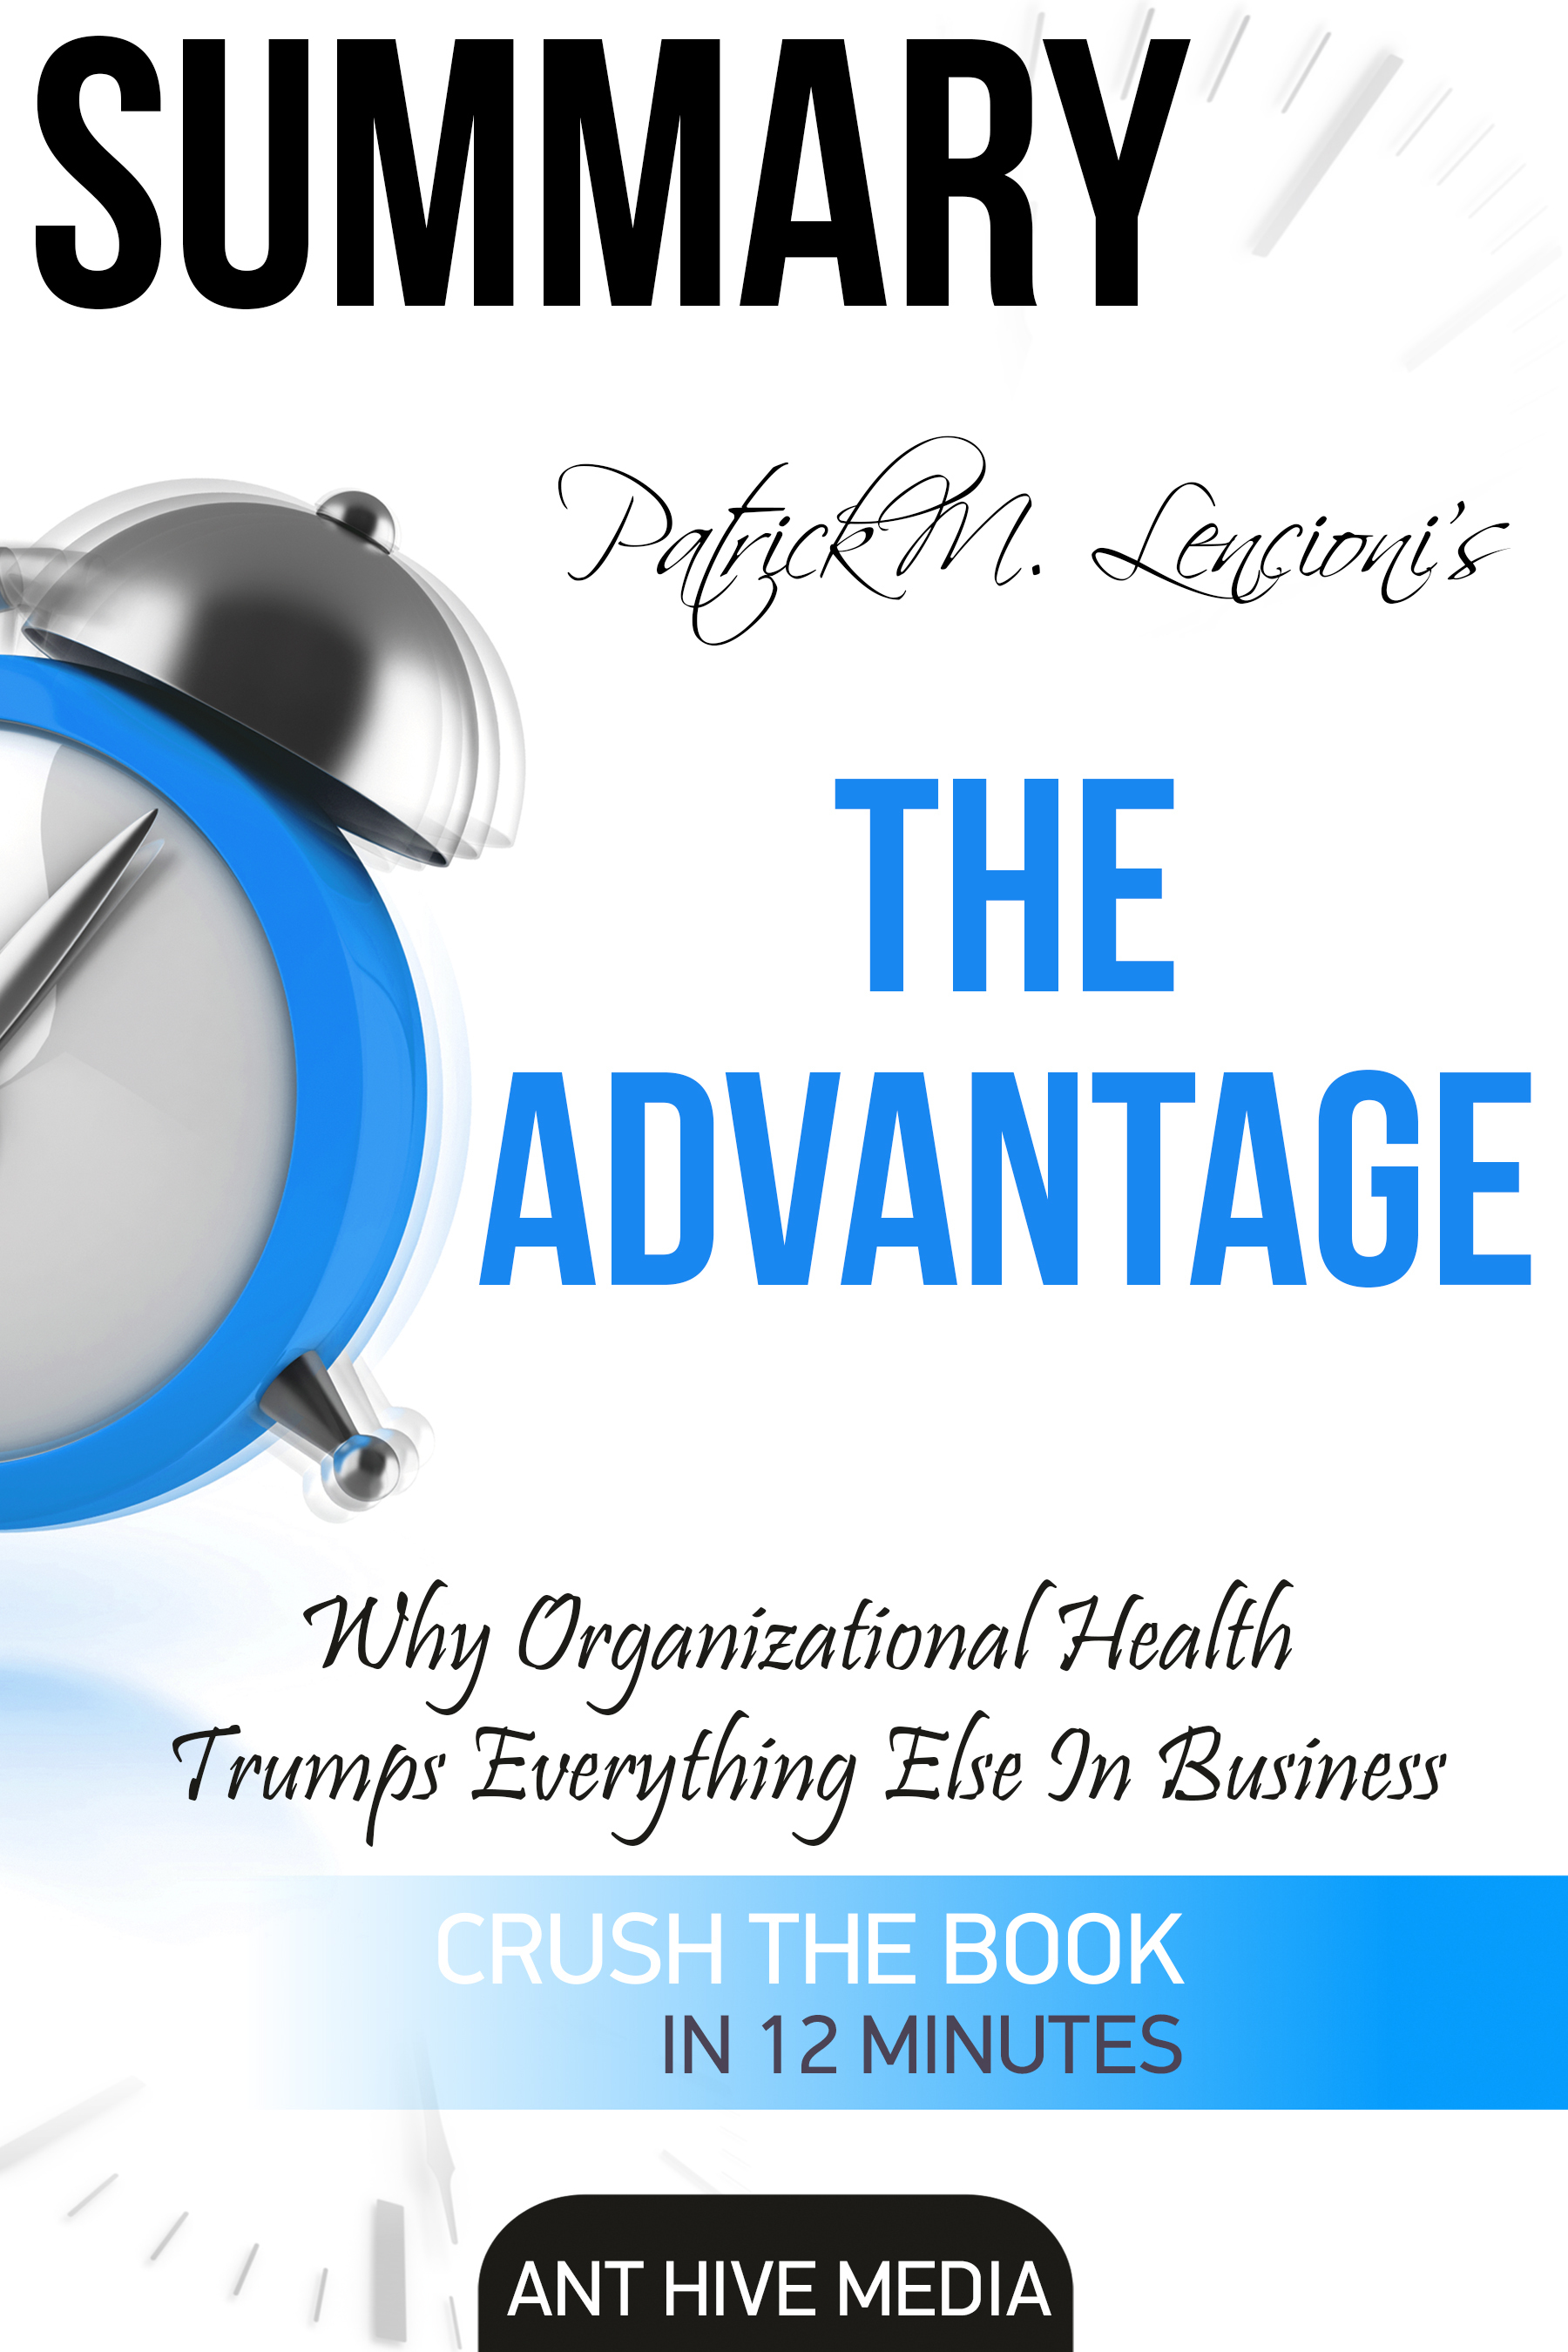 Patrick M. Lencioni's The Advantage Why Organizational Health Trumps Everything Else in Business Summary